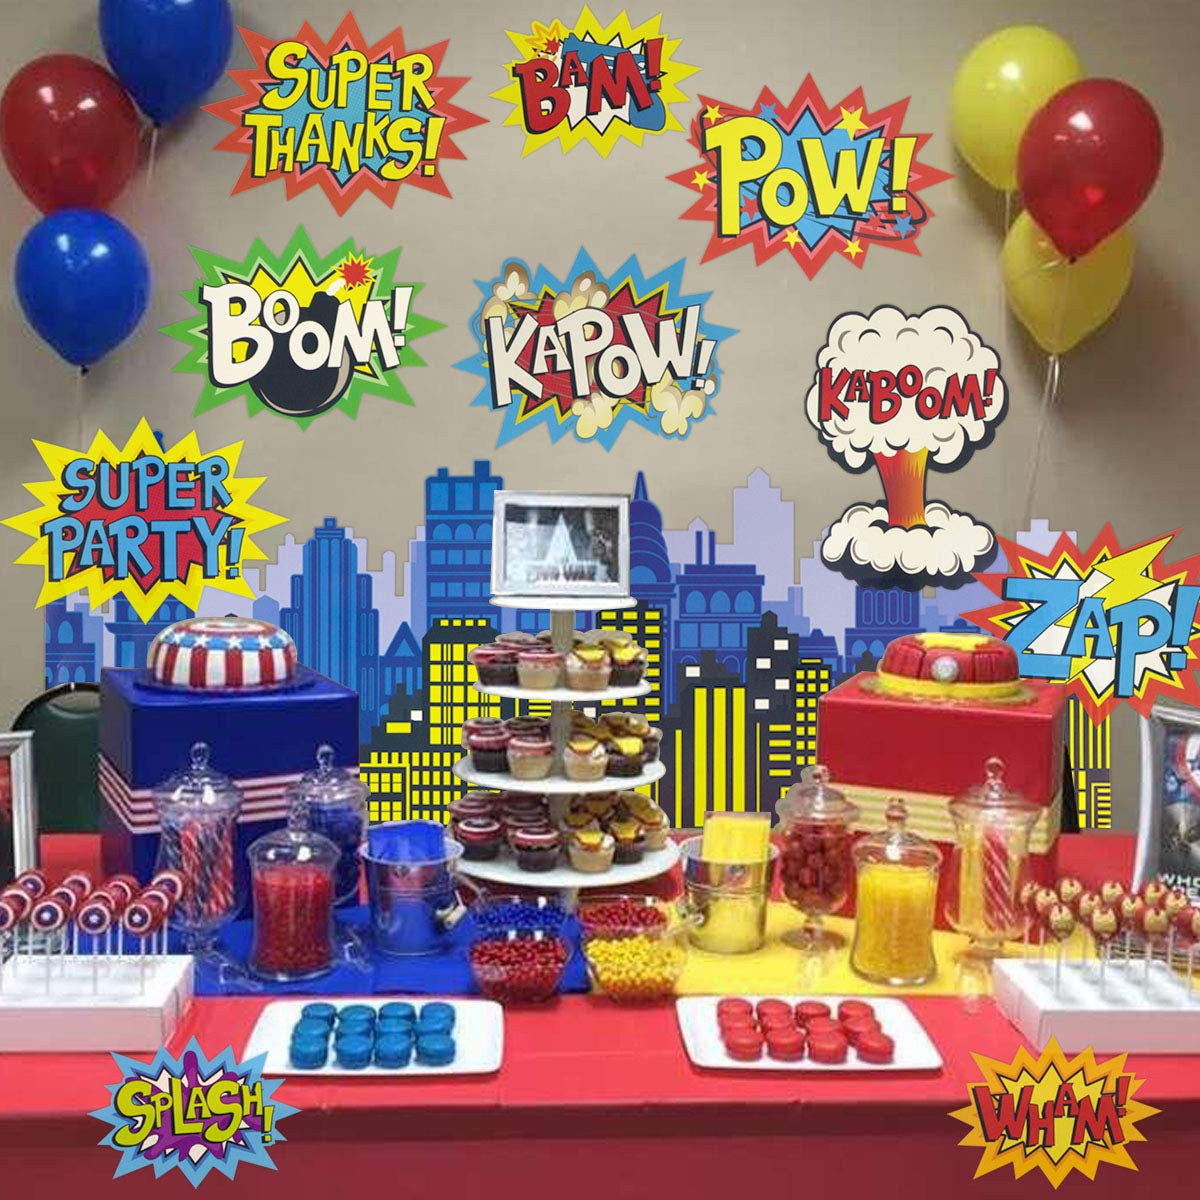 Large Superhero Action Signs Cutouts 12PCS Words and Cityscape Cut-Outs for Party Decoration by Fancy Land (Image #6)